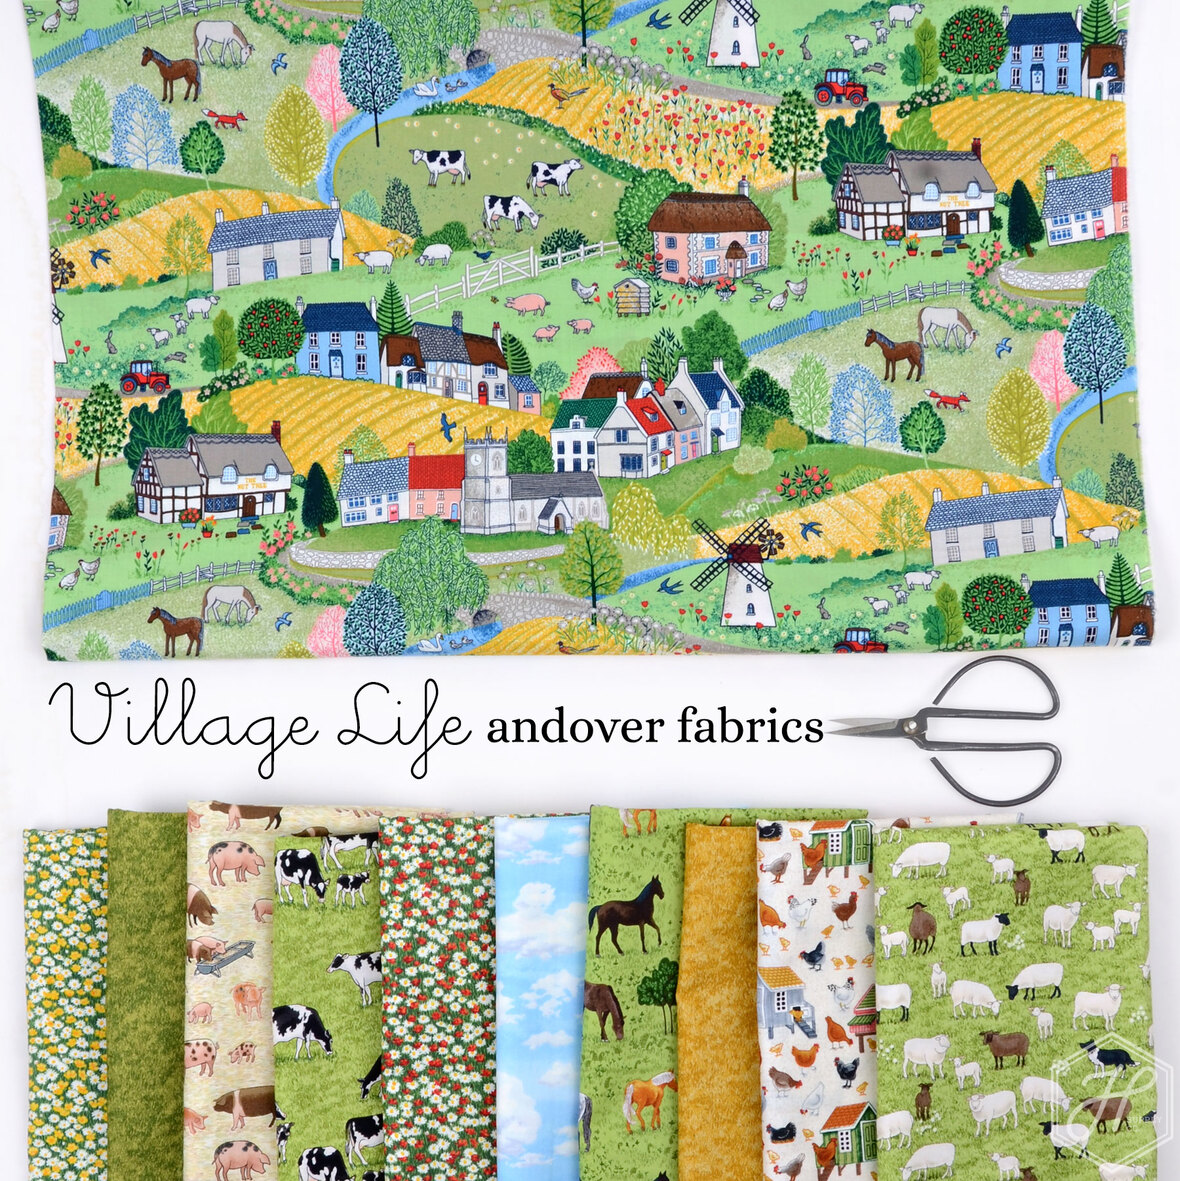 Village-Life-Fabric-Poster-Andover-at-Hawthorne-Supply-Co